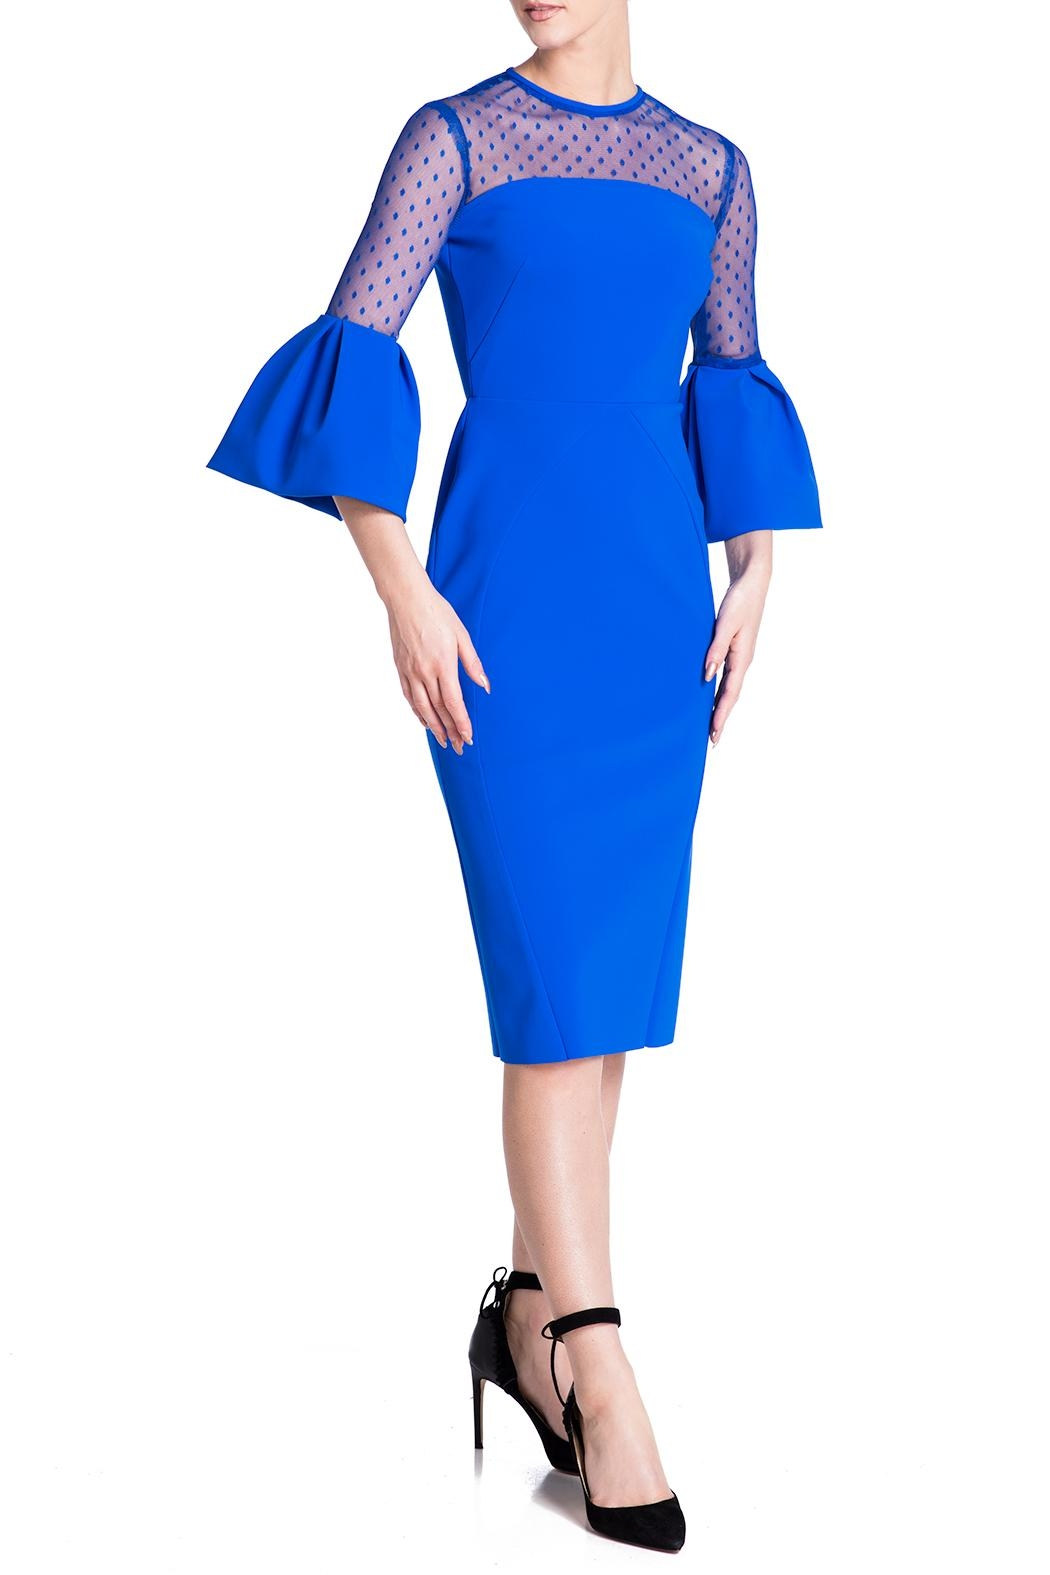 Greta Constantine Laurent Dress - Front Cropped Image